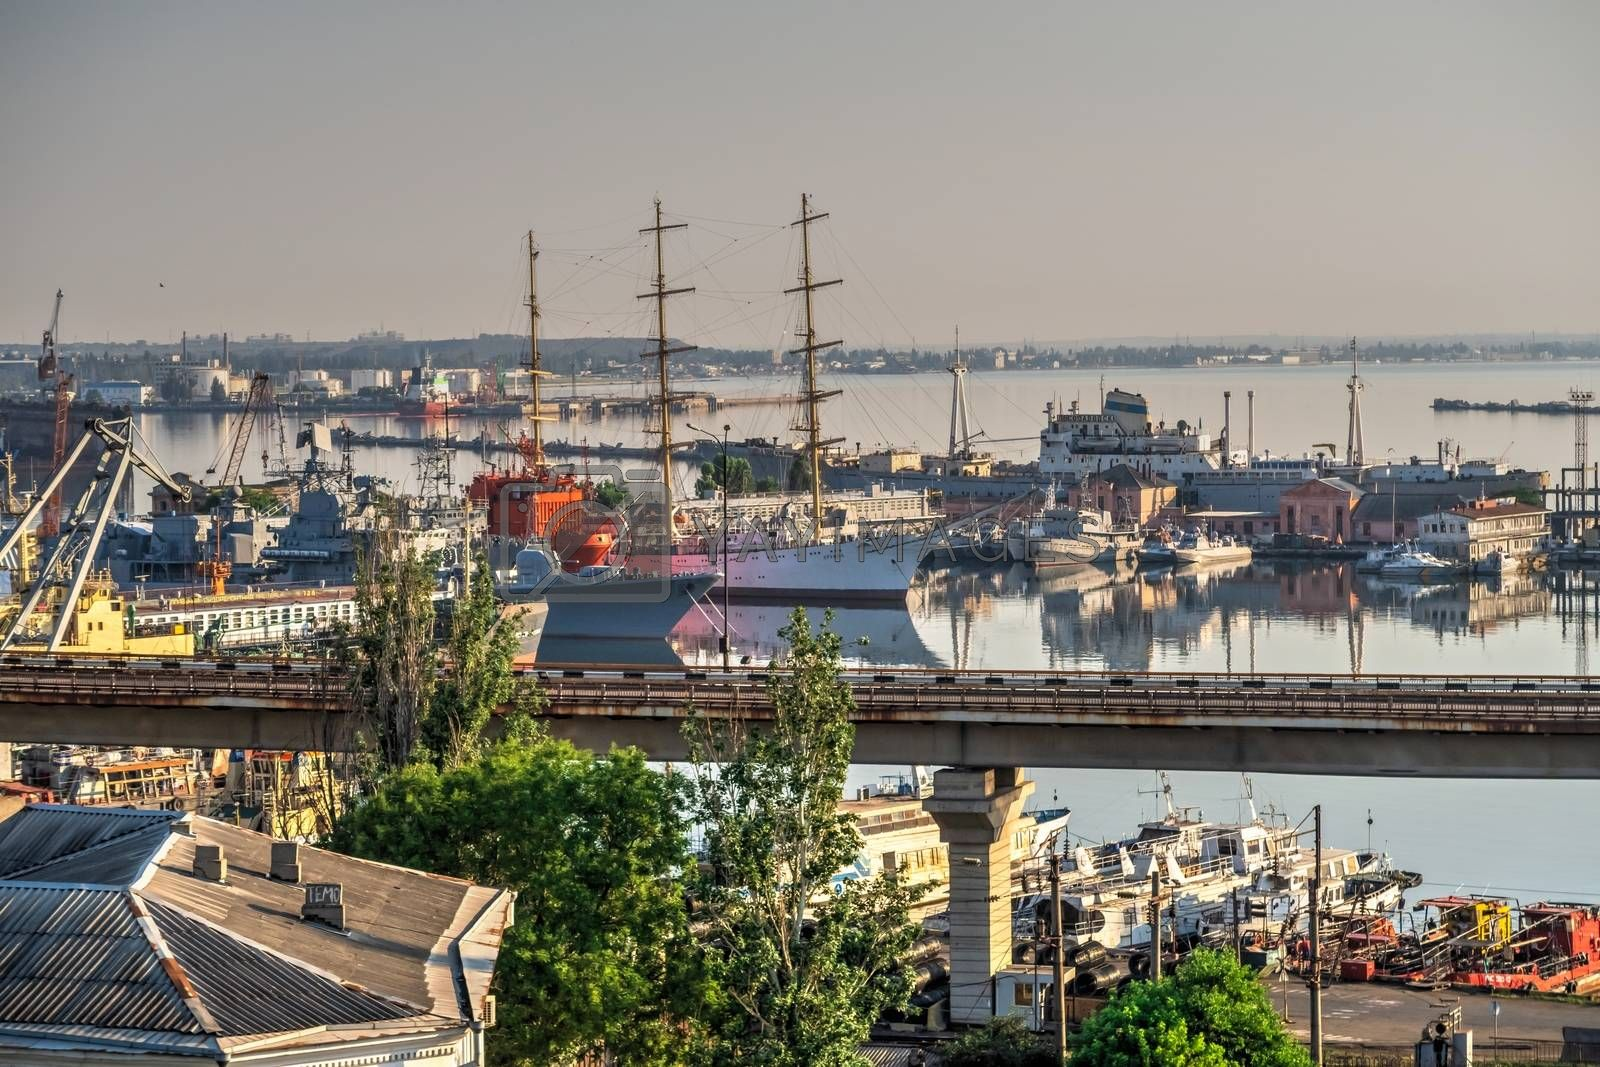 Odessa, Ukraine 06.30.2020. View of the Practical Harbor in Odessa, Ukraine, on a sunny summer morning